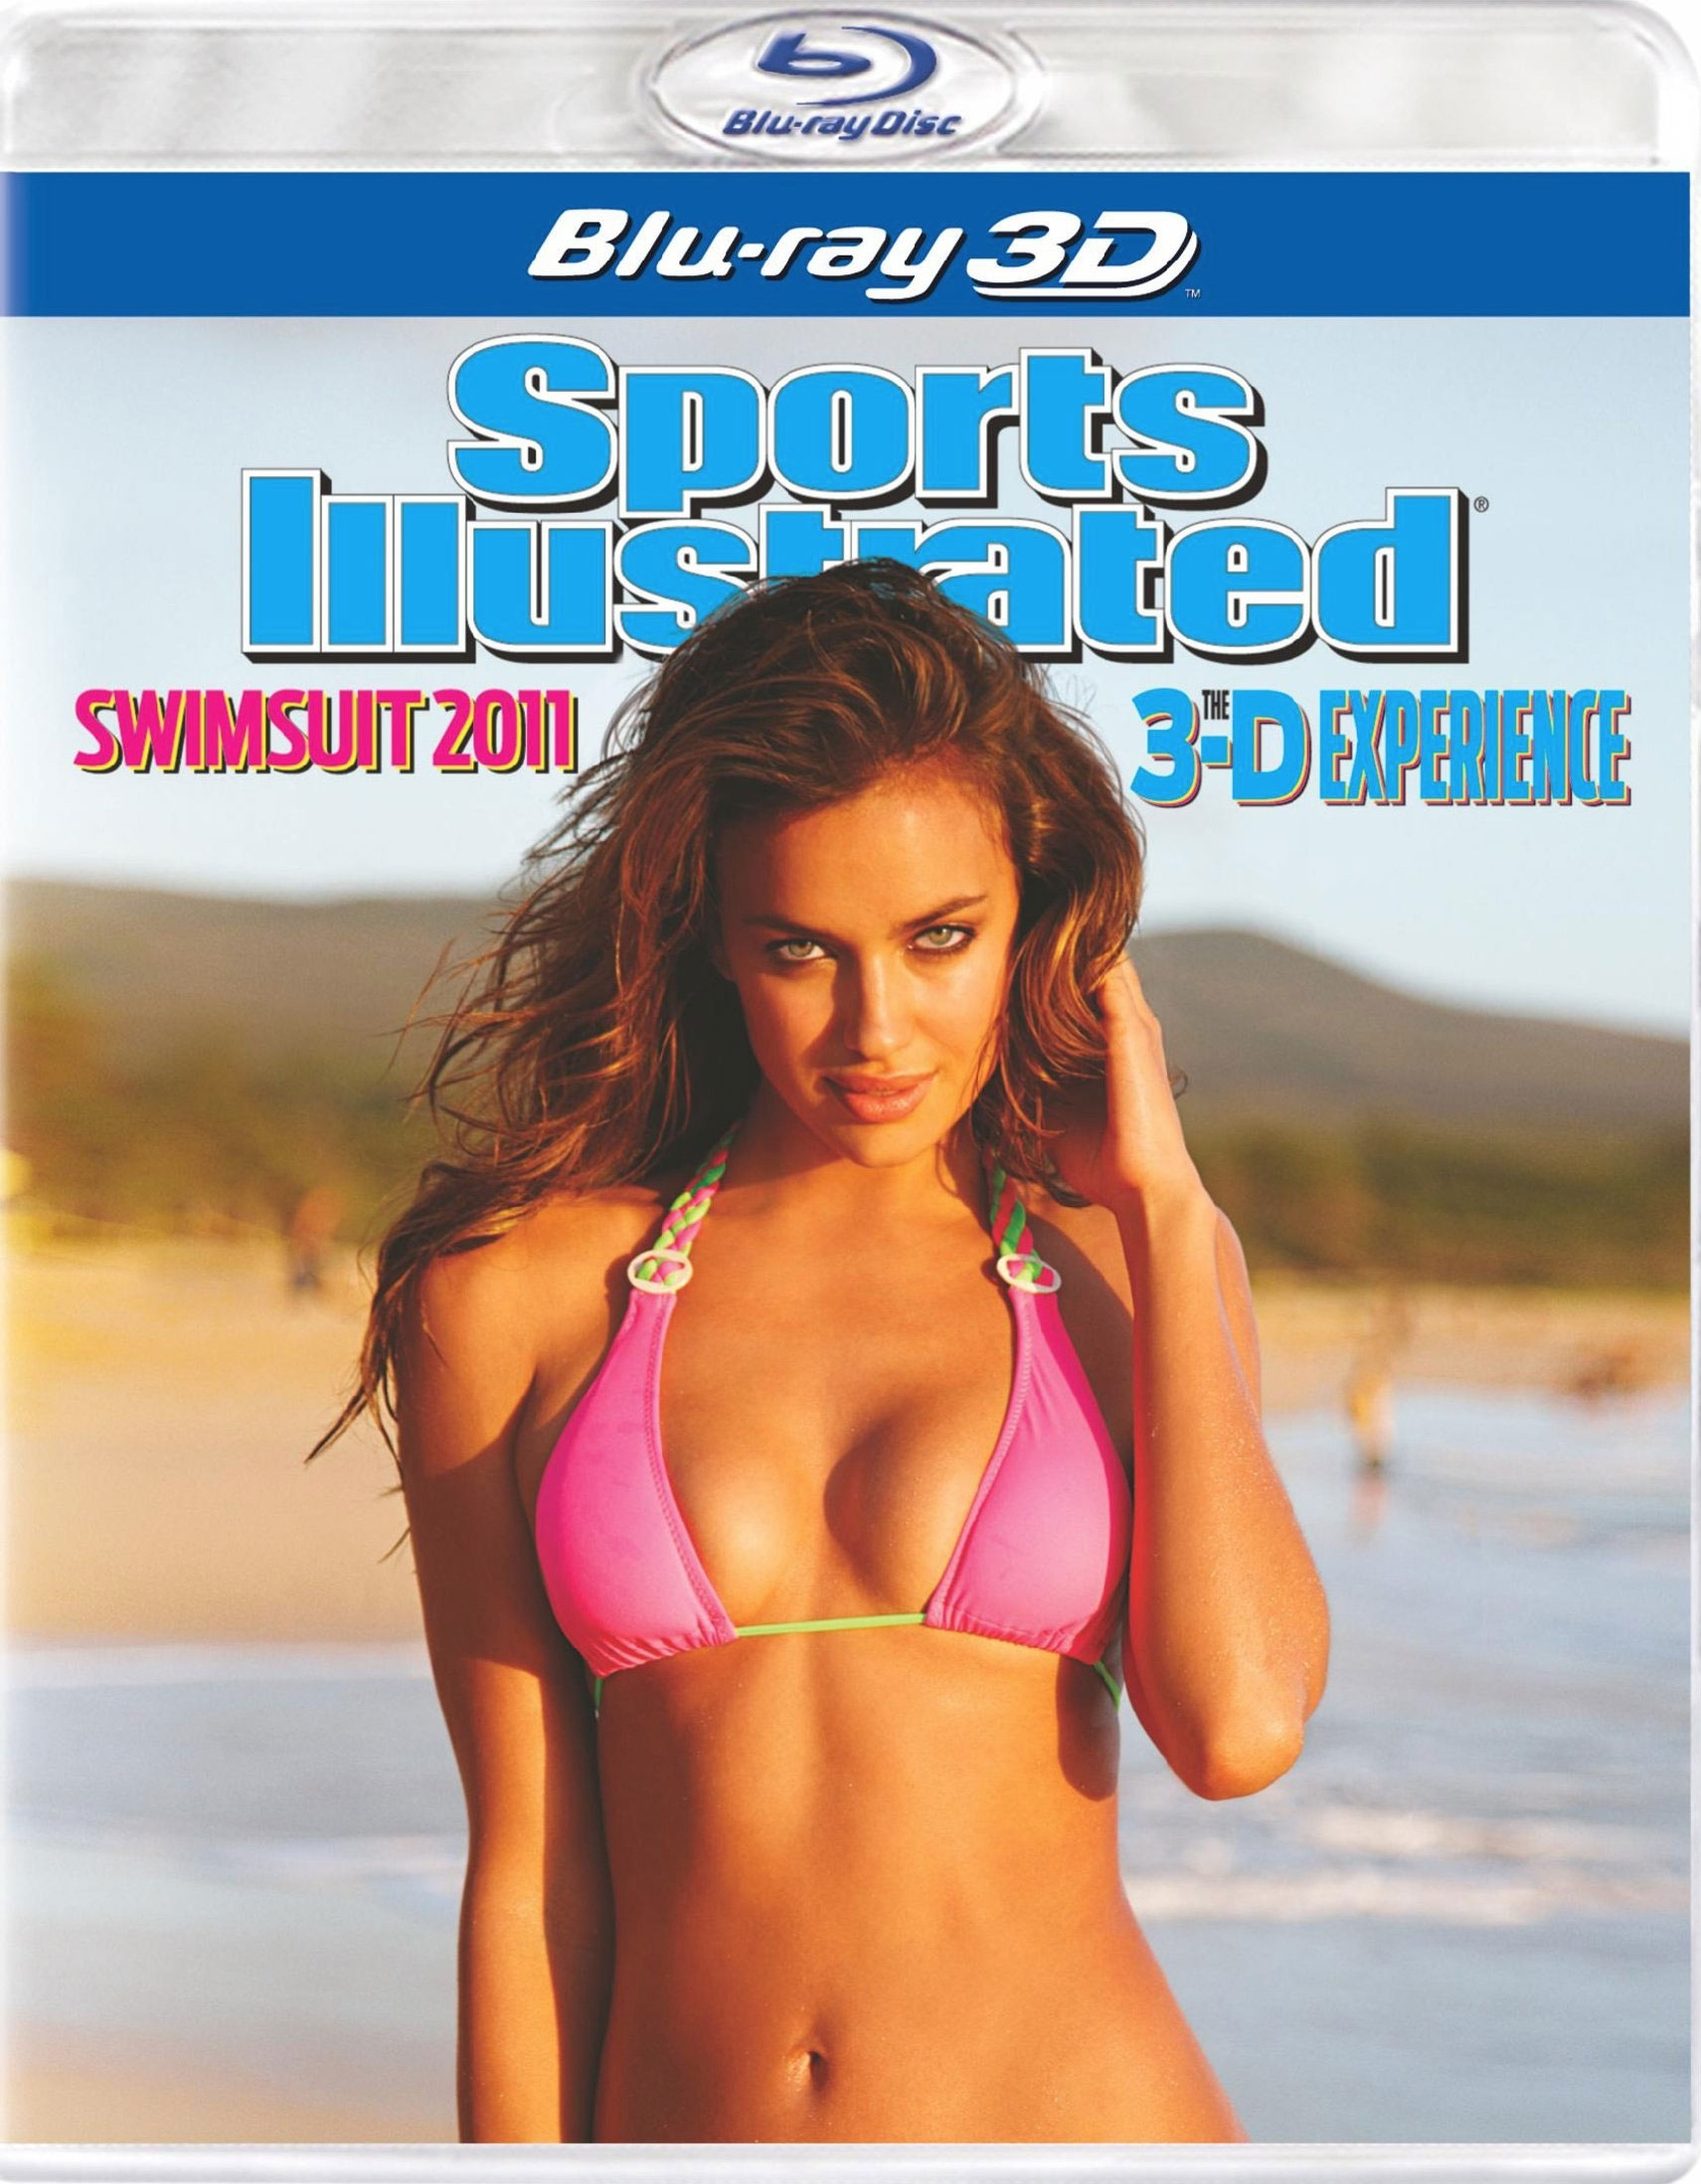 image Sports Illustrated Swimsuit 2011: The 3d Experience (2011) (V) Watch Full Movie Free Online